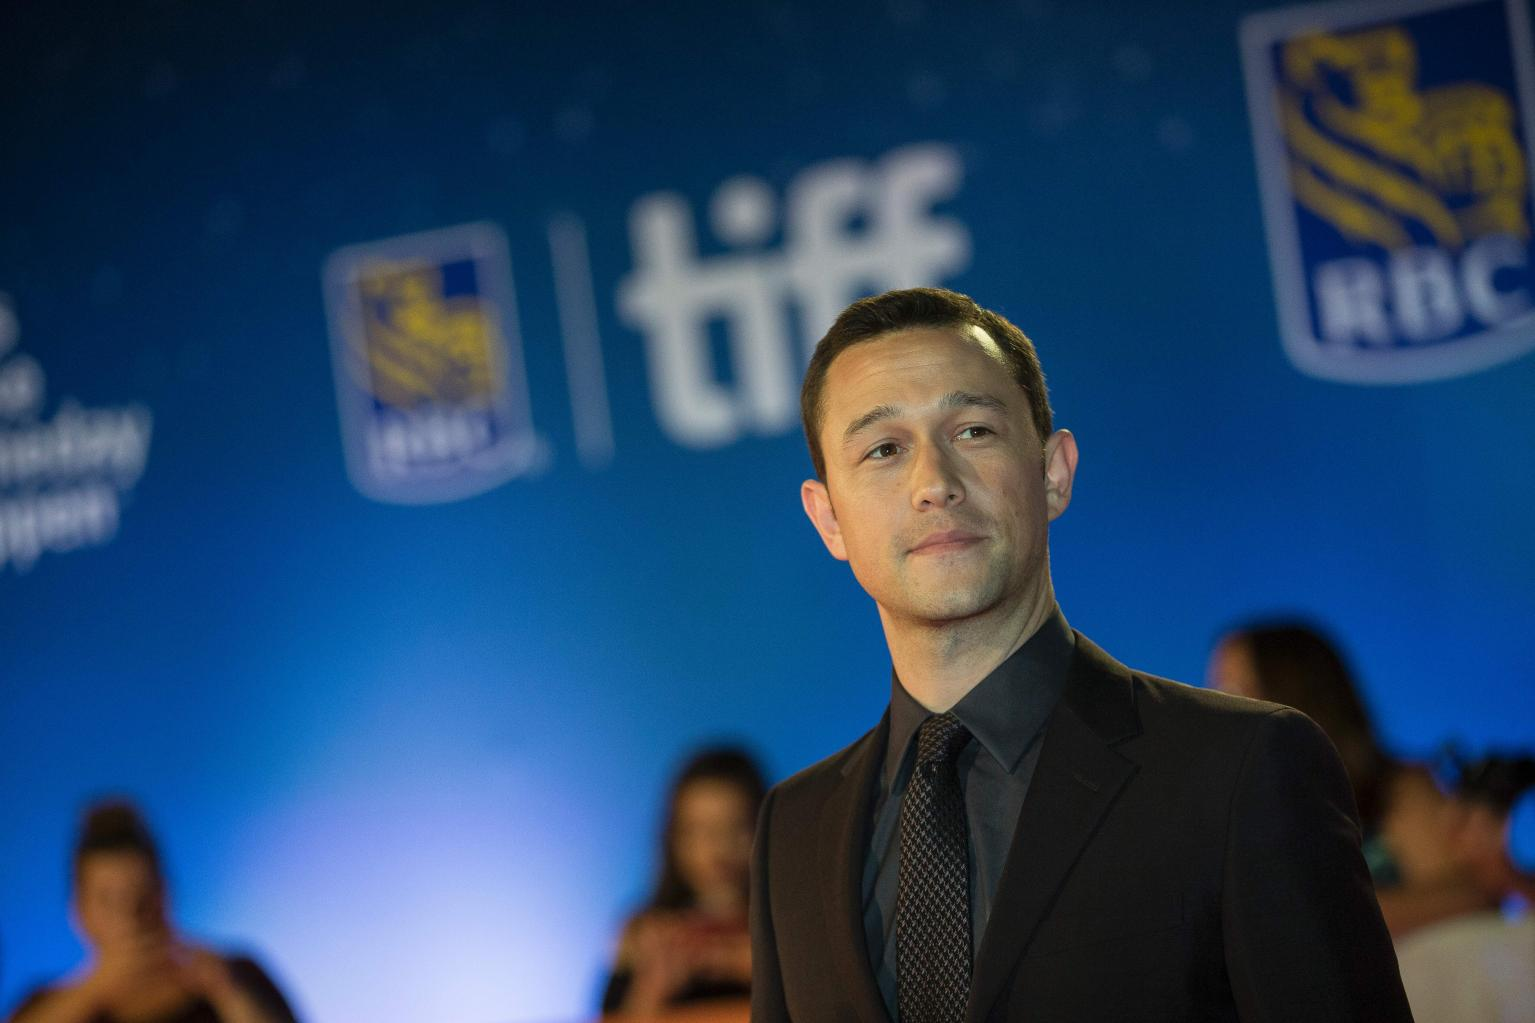 Joseph Gordon-Levitt On 'Snowden' Oscar Buzz: 'You Hear Lots Of Things'